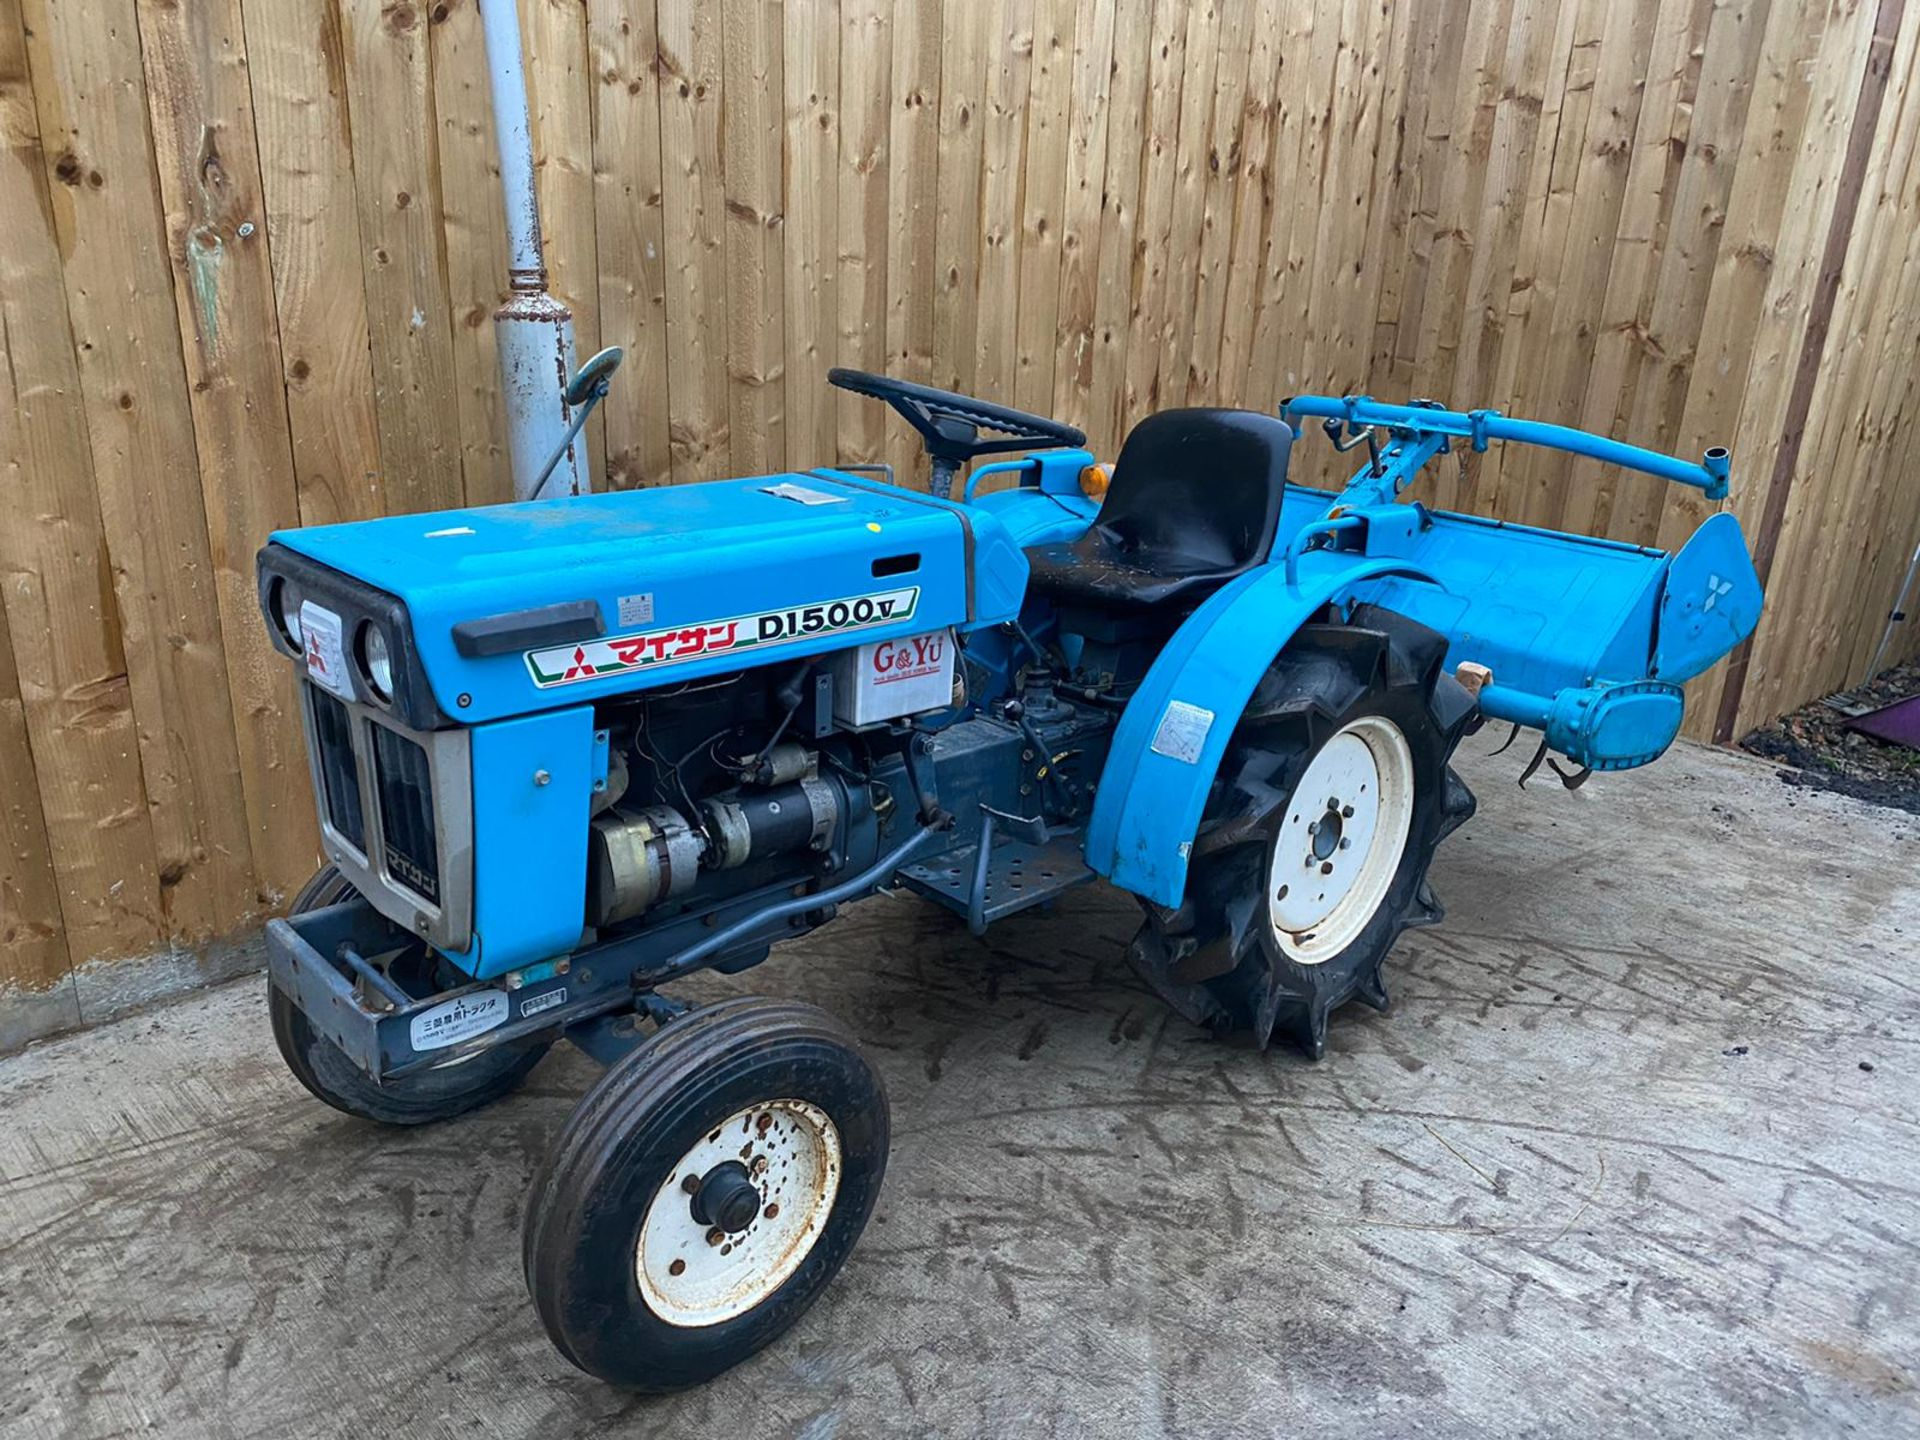 MITSUBISHI D1500V COMPACT TRACTOR & ROTOVATOR, STARTS, RUNS AND DRIVES & WORKS WELL *PLUS VAT* - Image 4 of 5